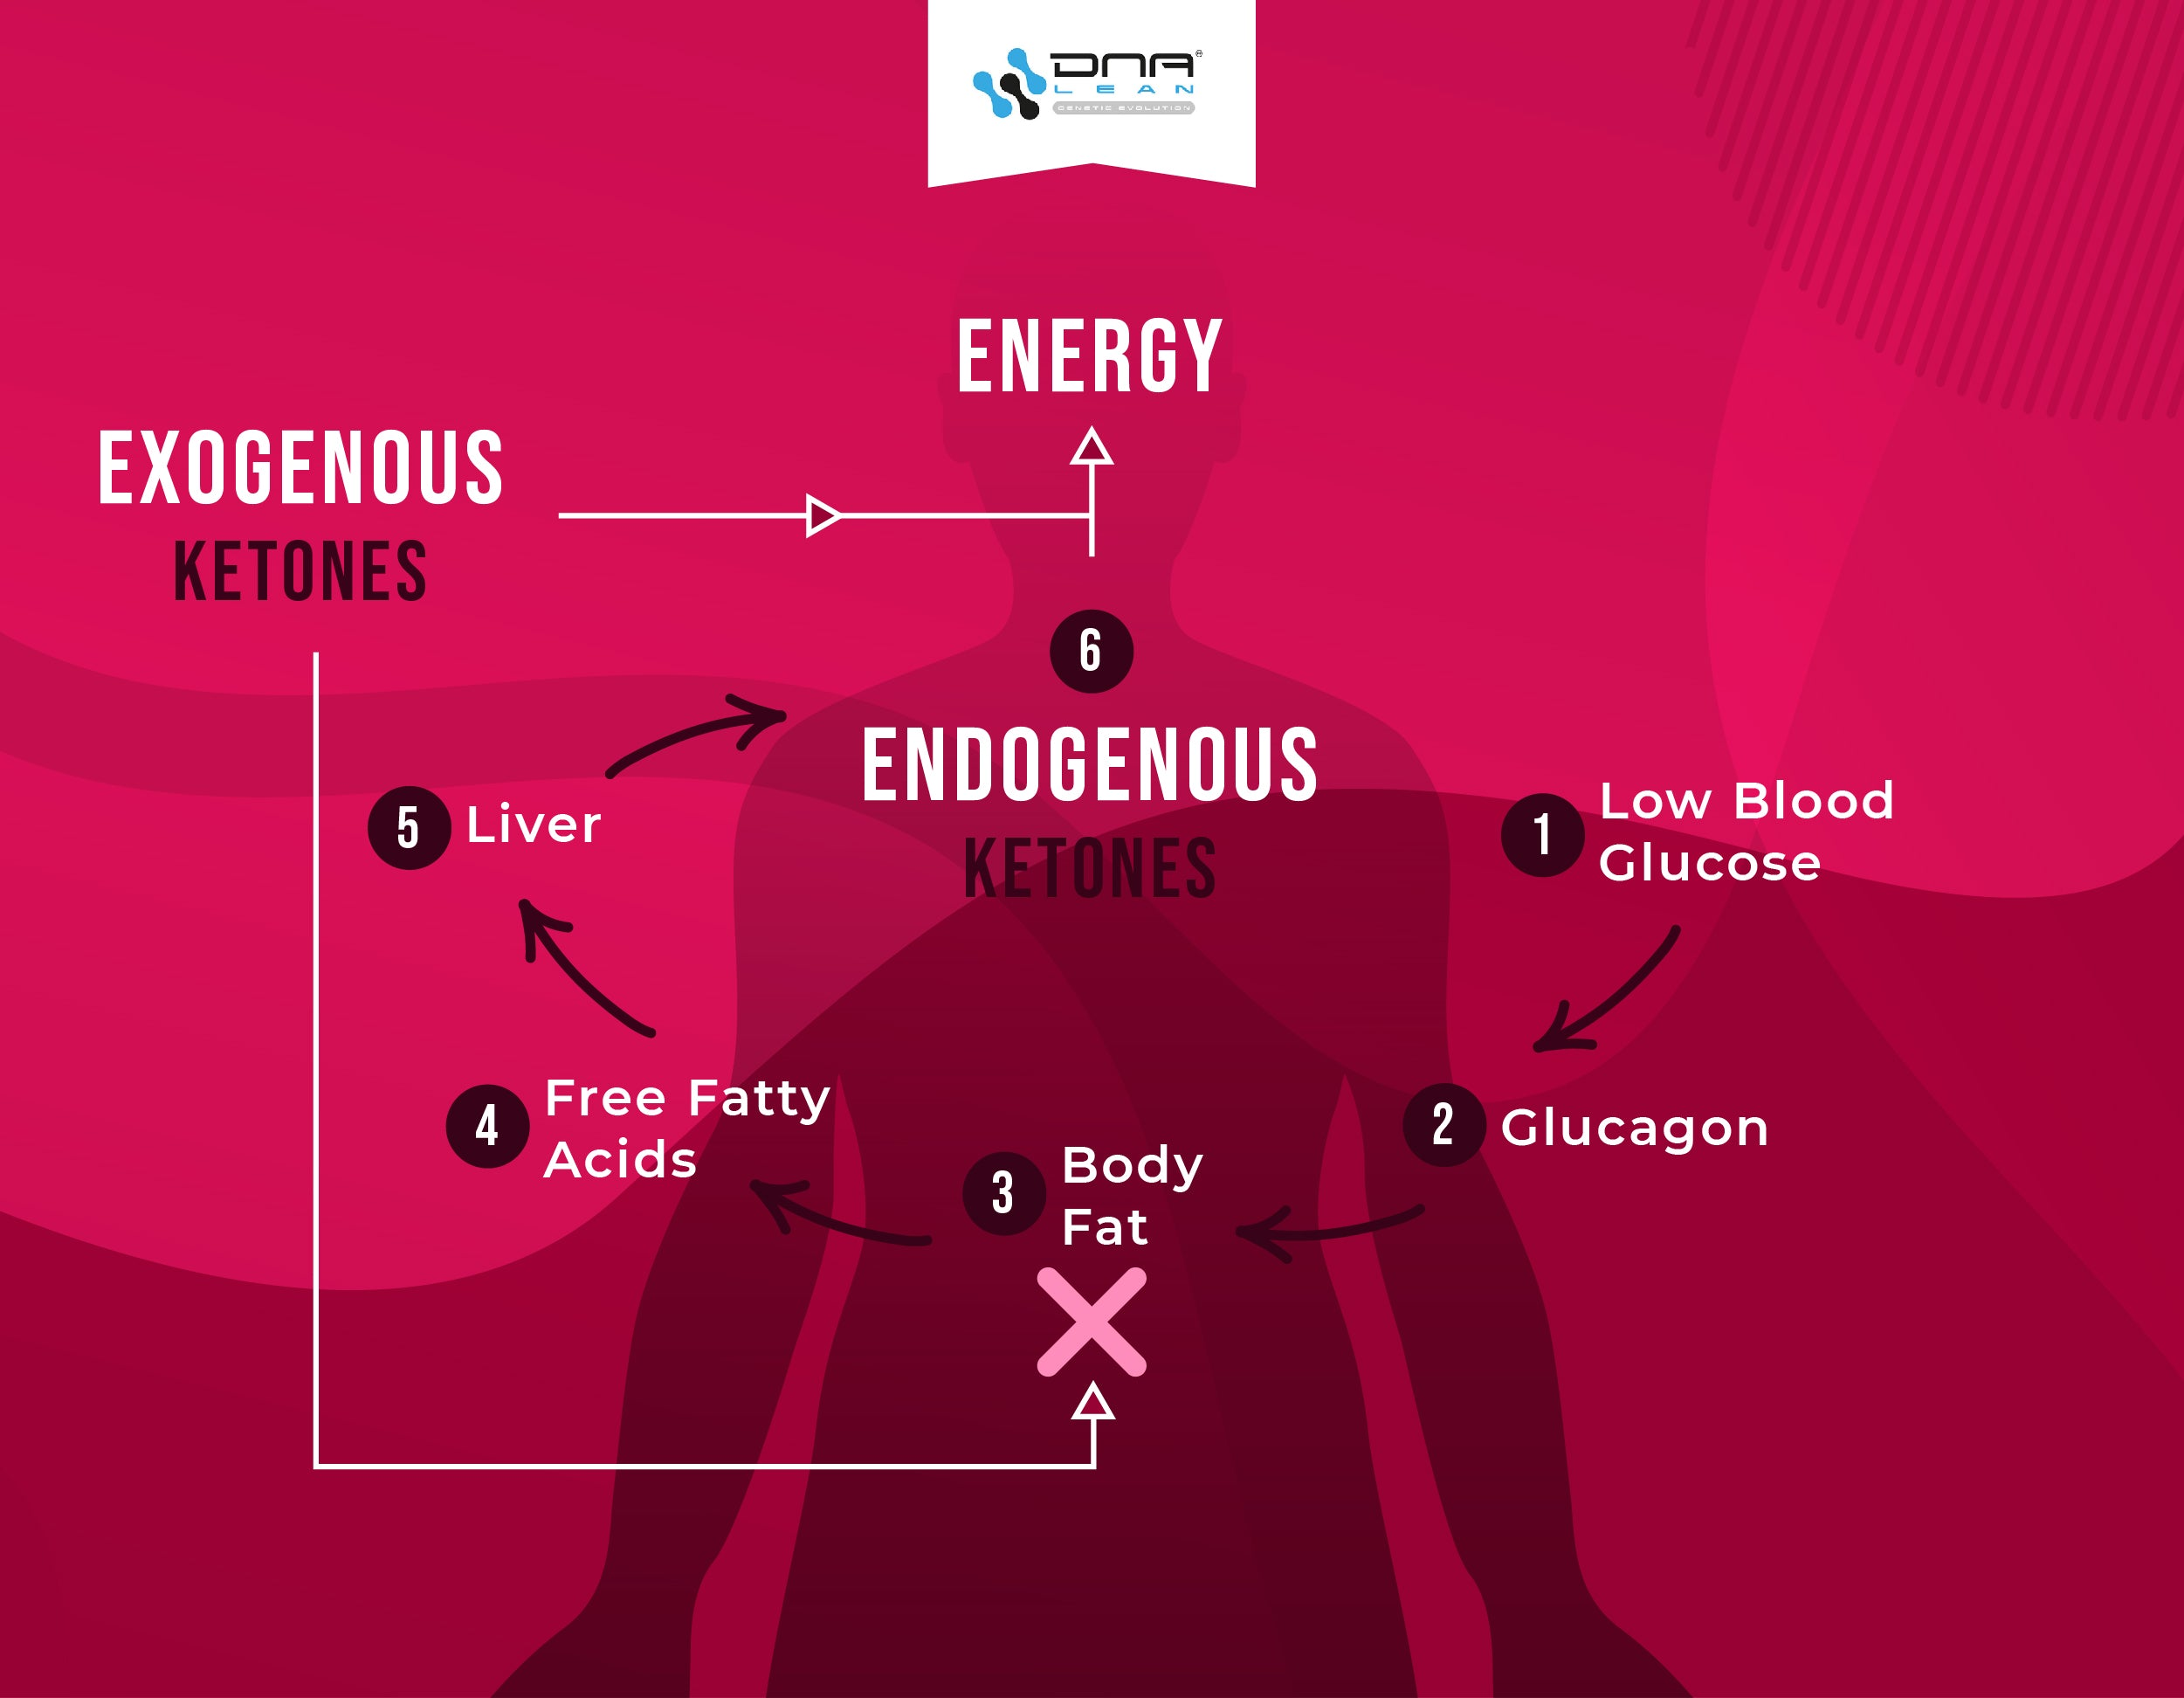 Exogenous ketones create a negative feedback cycle and inhibit fat degredation